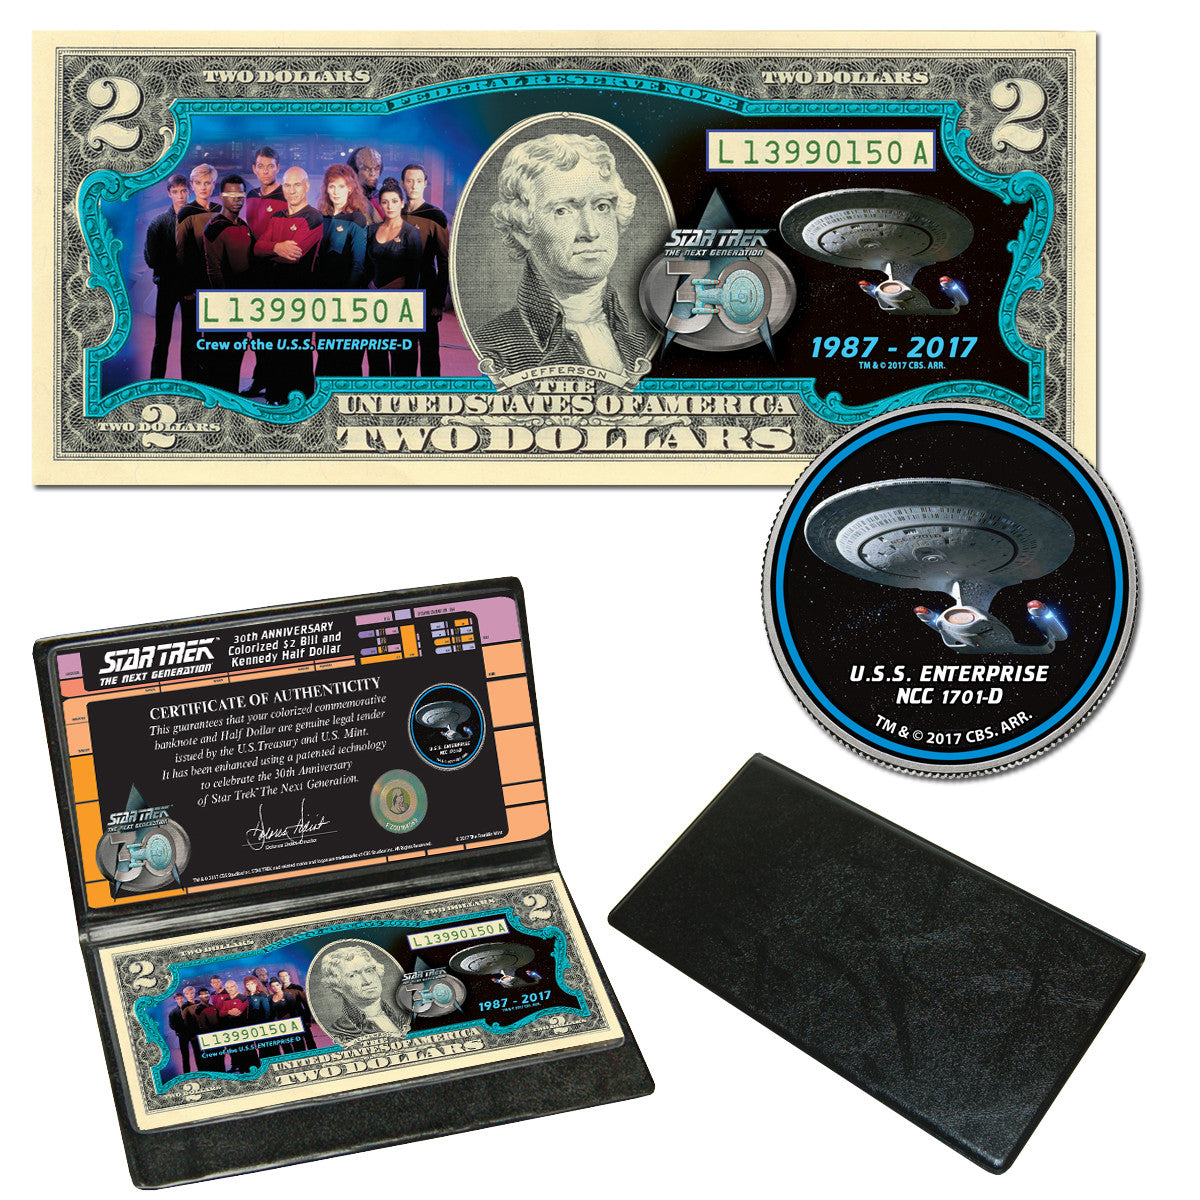 Star Trek: The Next Generation Coin & Currency Collection - The Crew